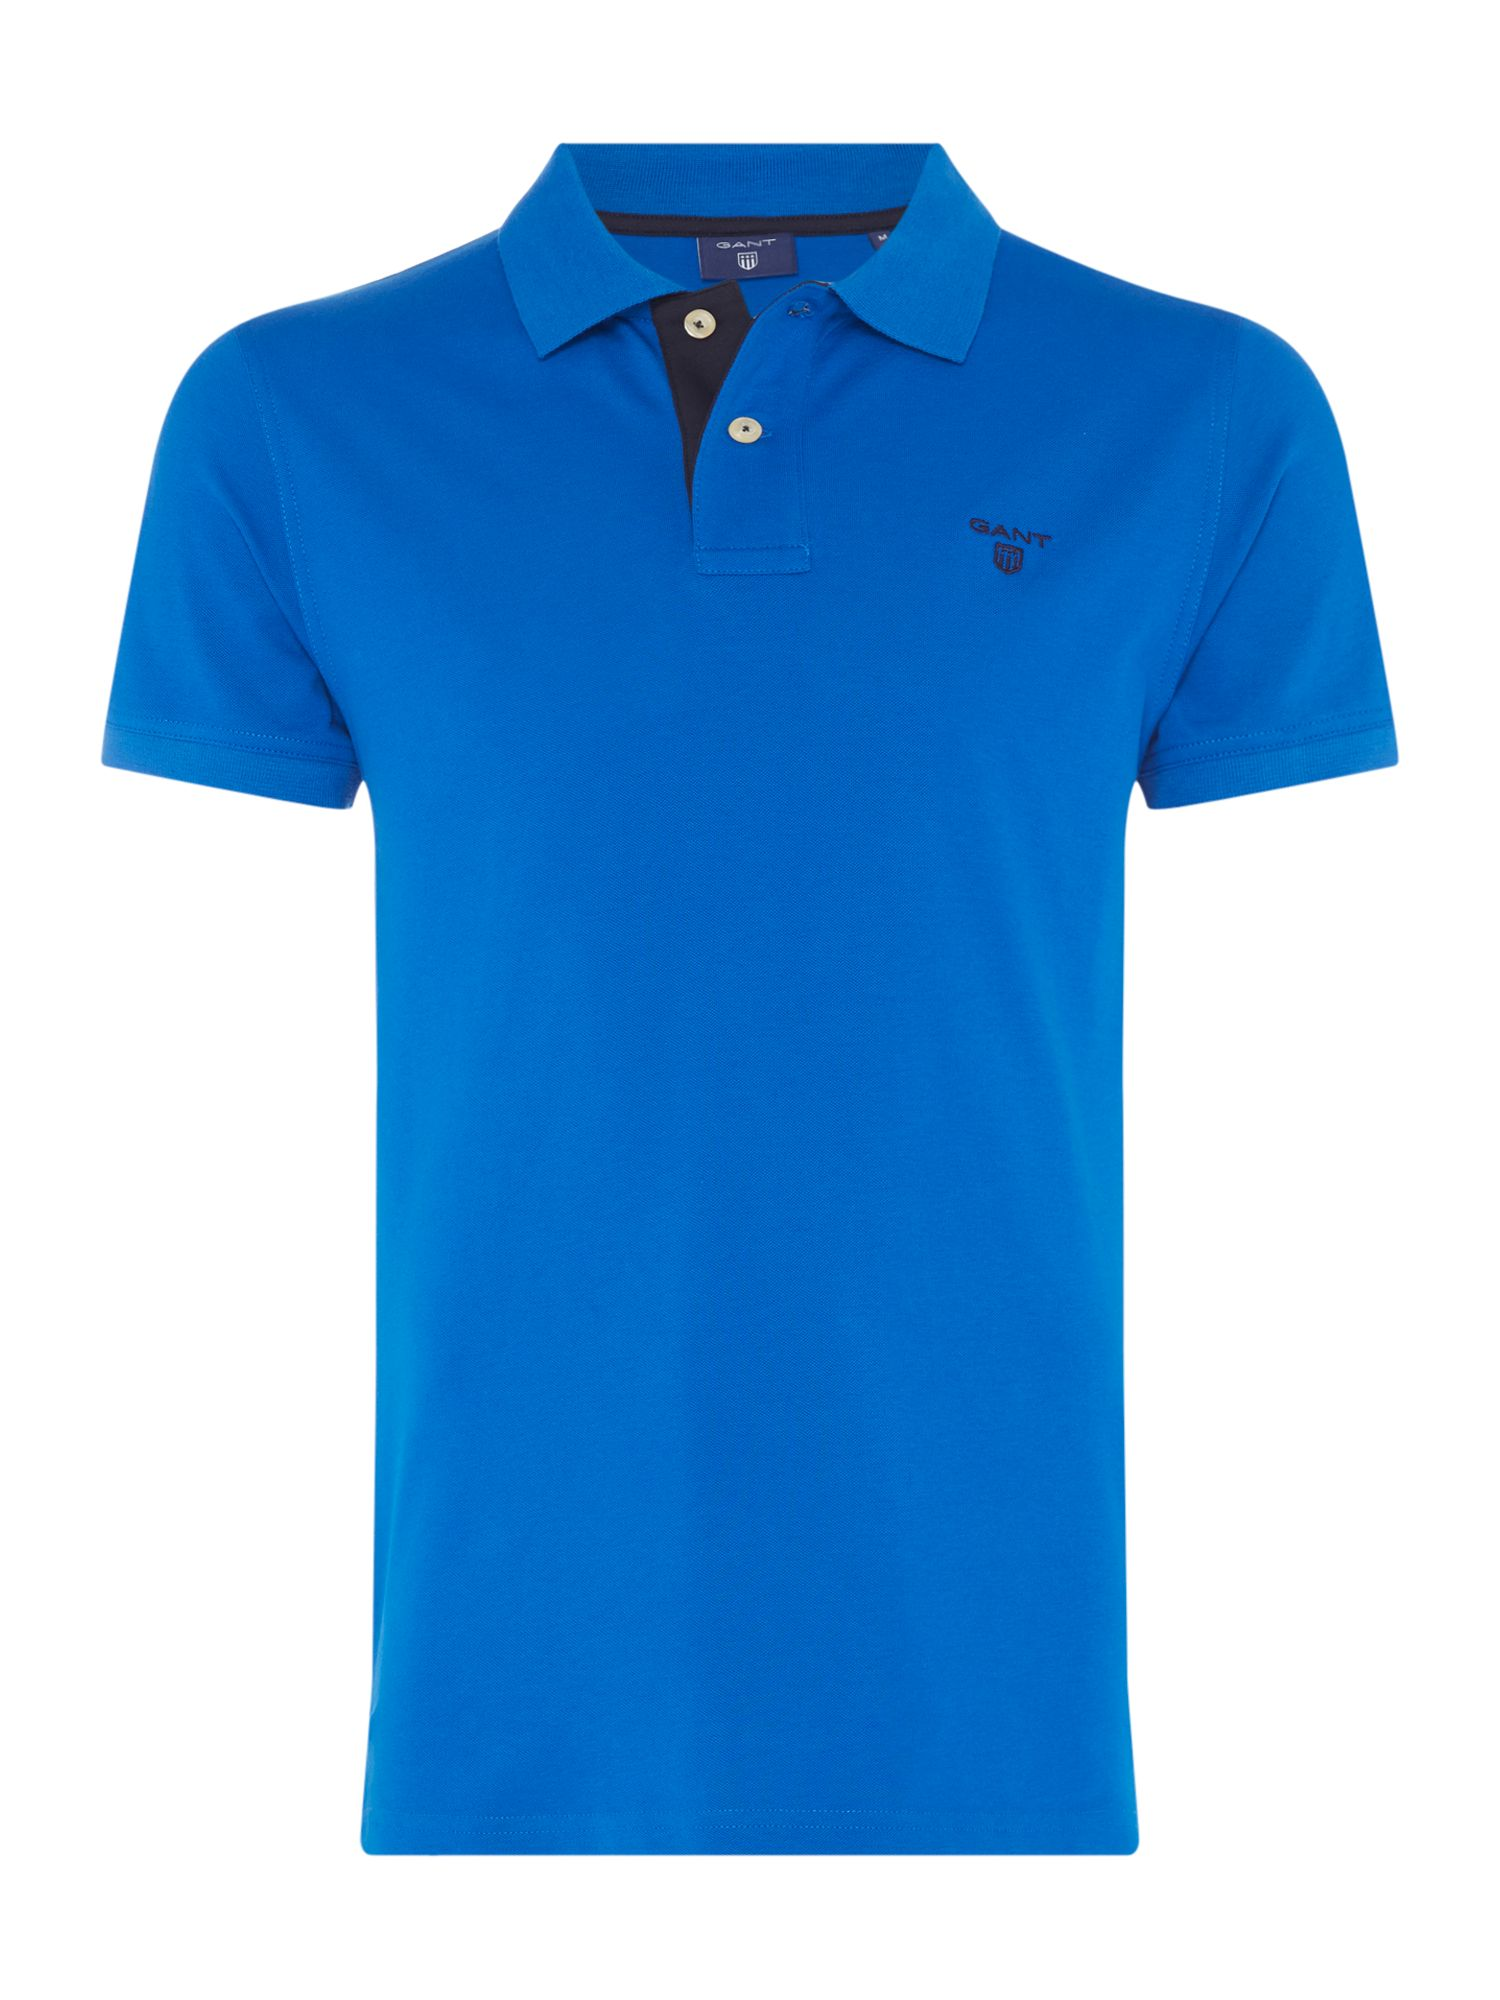 Men's Gant Contrast Collar Polo Shirt, Vivid Blue